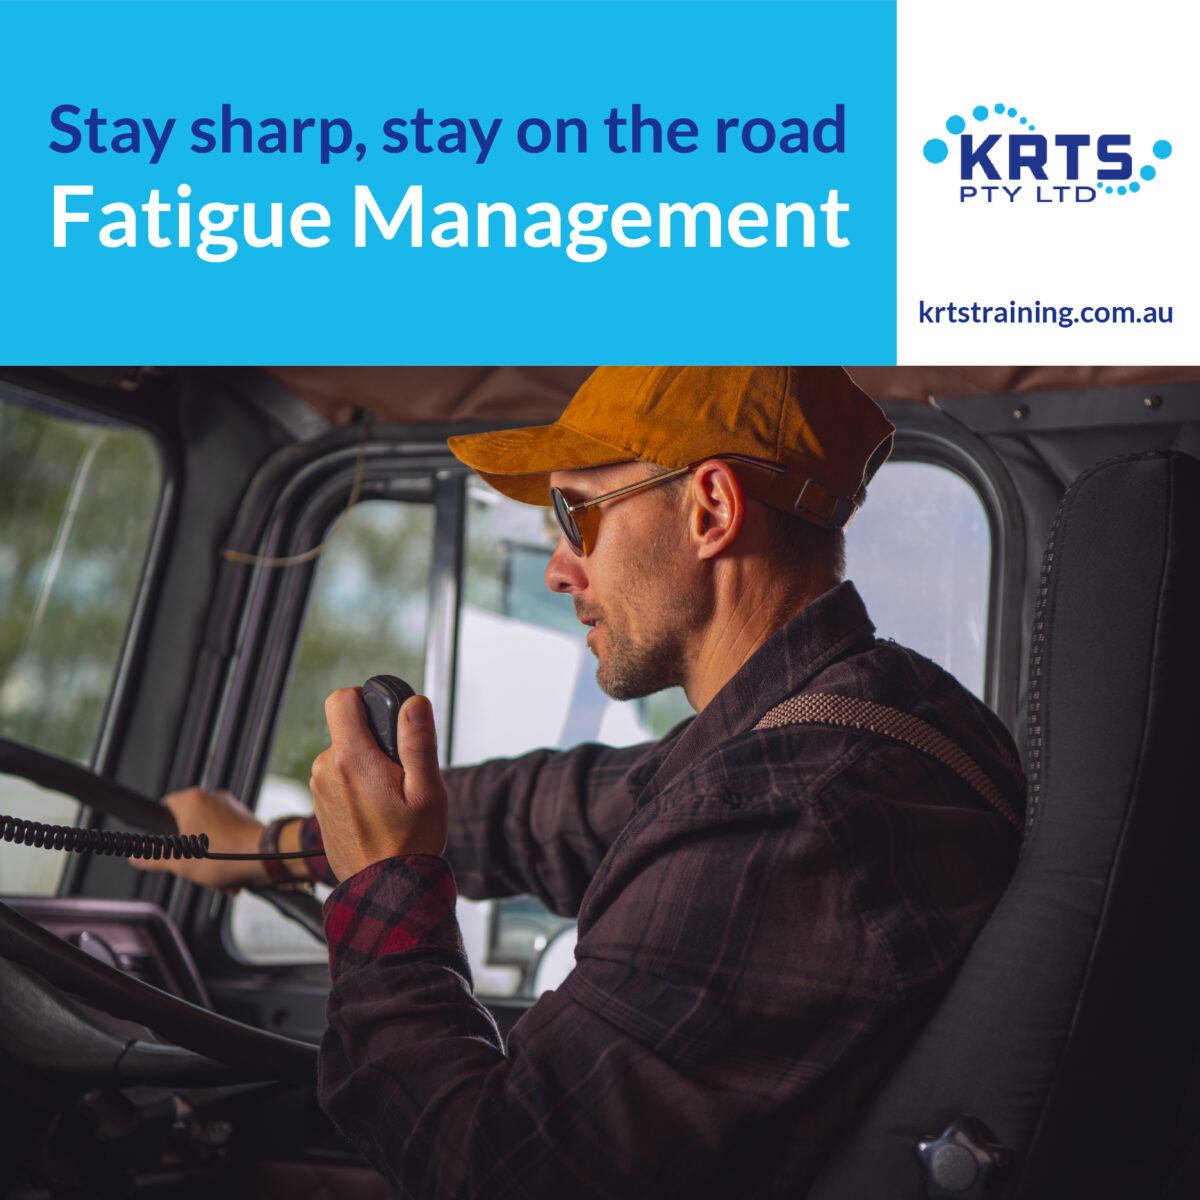 management course online advanced fatigue